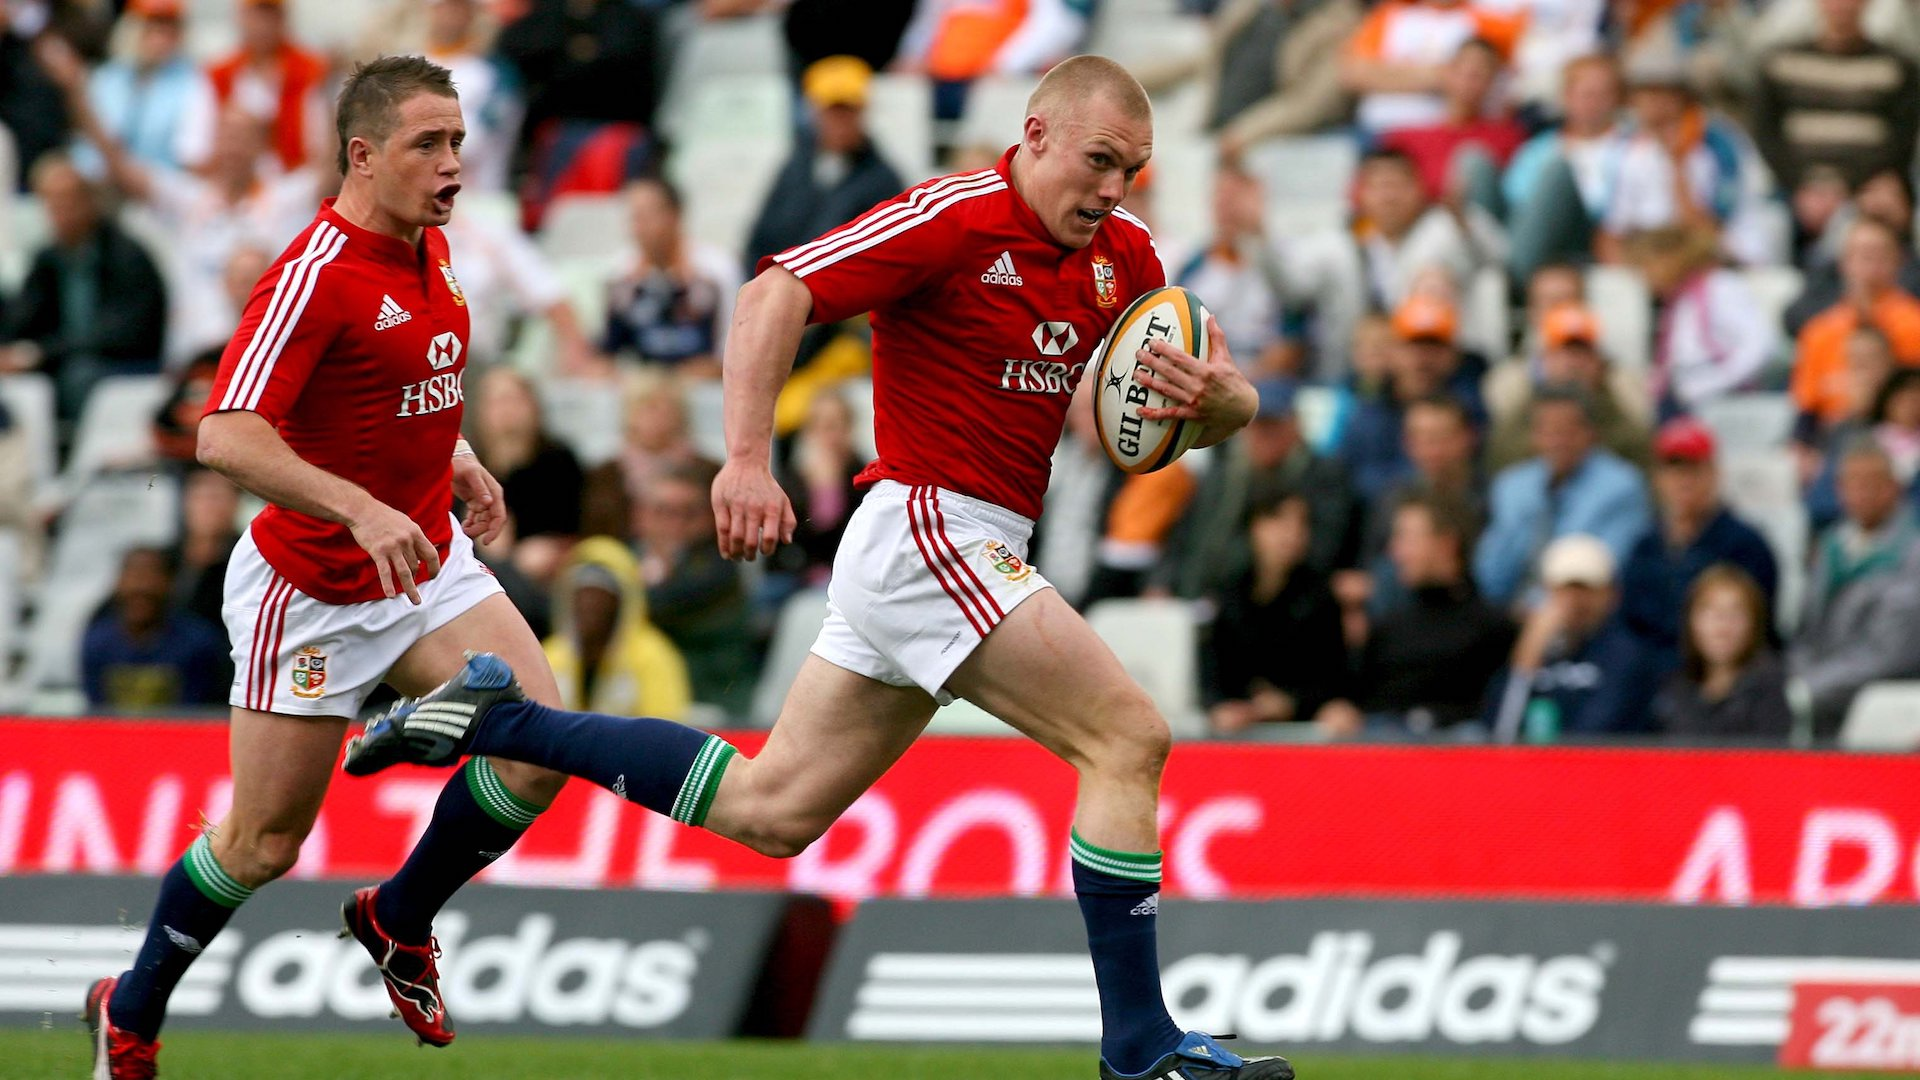 Keith Earls is among Lions bolters